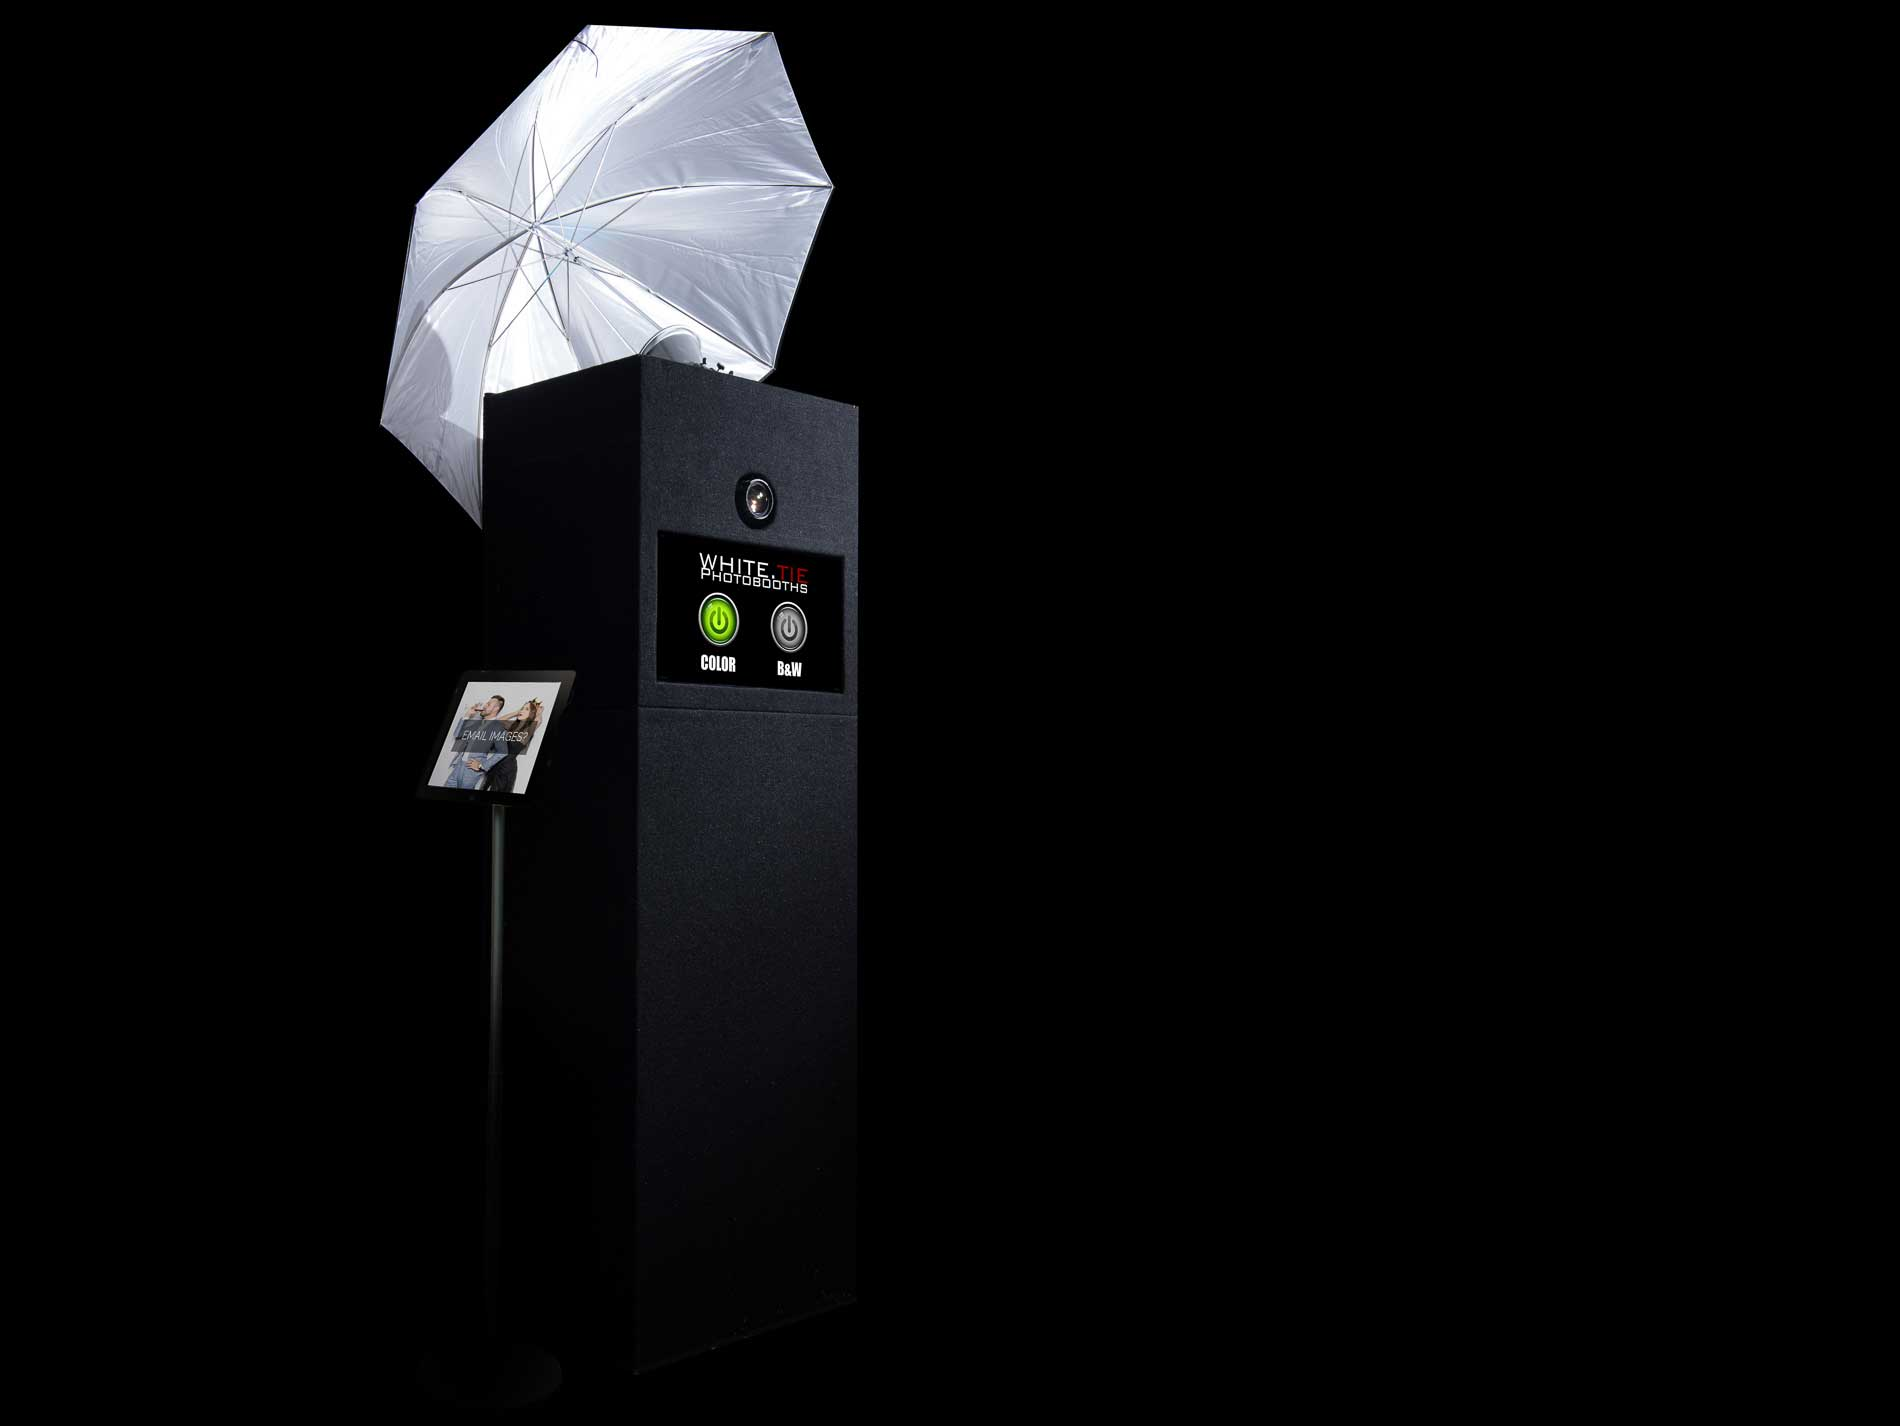 a black photo booth with professional lighting and camera